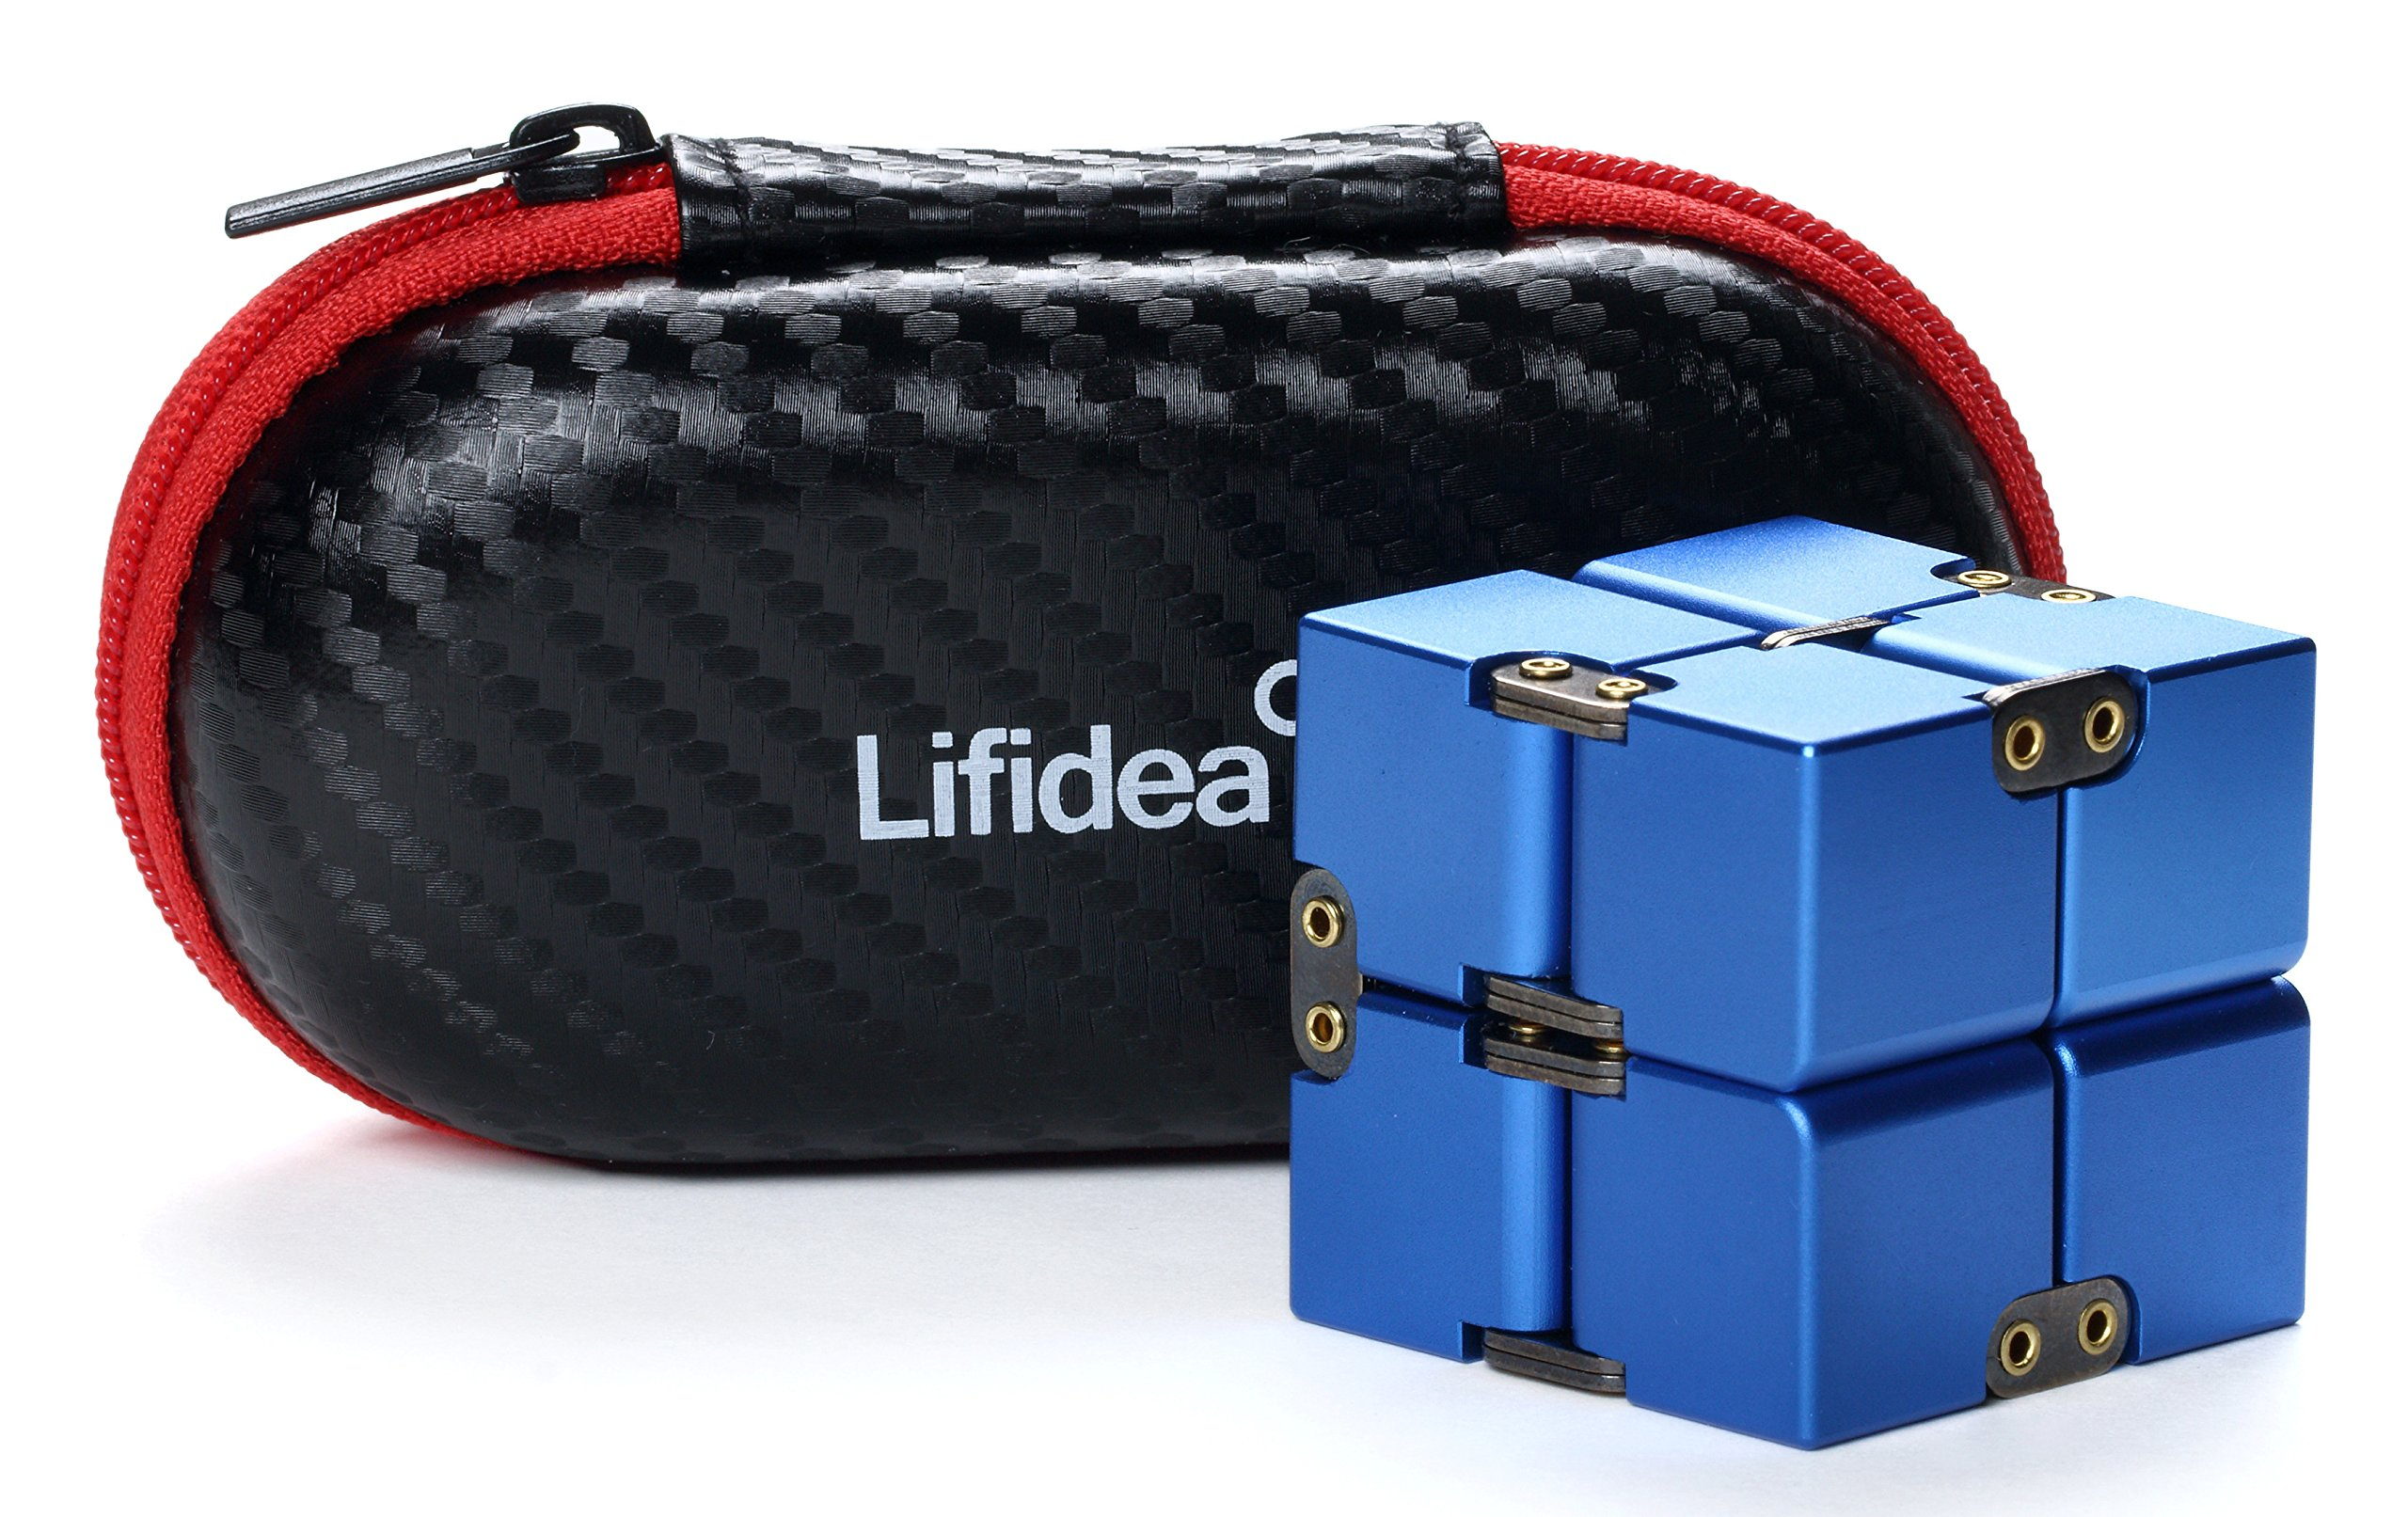 Lifidea Aluminum Alloy Metal Infinity Cube Fidget Cube (5 Colors) Handheld Fidget Toy Desk Toy with Cool Case Infinity Magic Cube Relieve Stress Anxiety ADHD OCD for Kids and Adults (Blue) by Lifidea